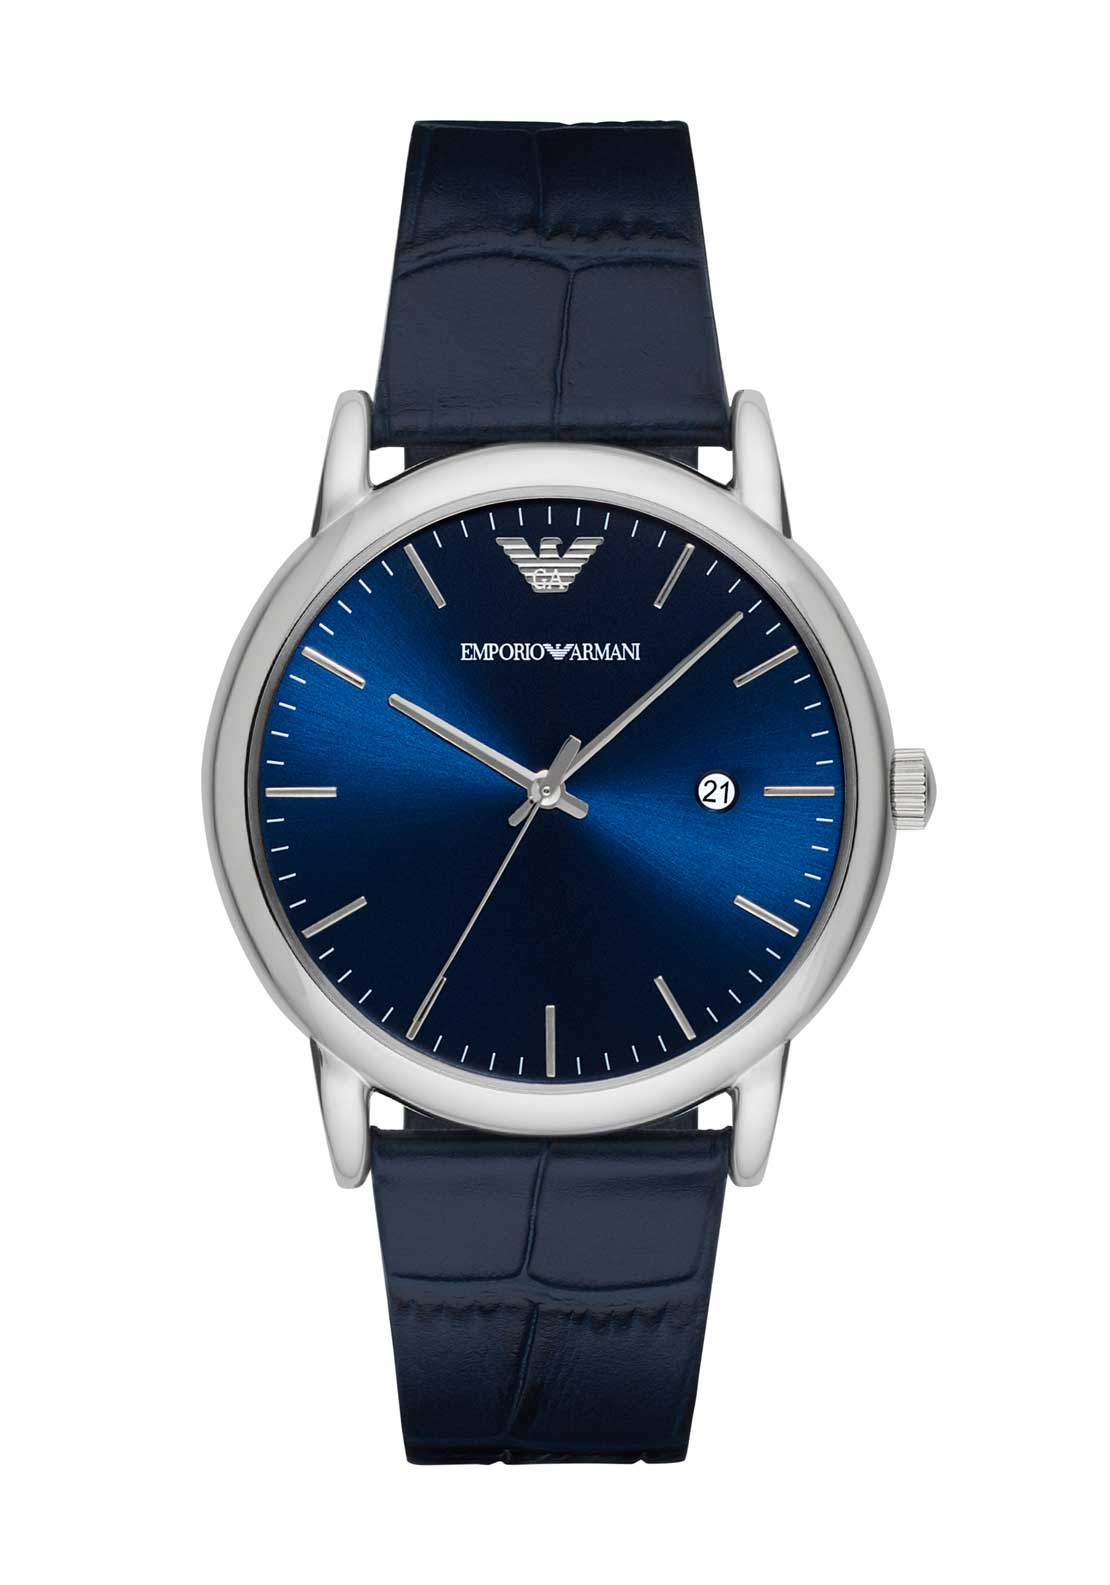 Emporio Armani Mens Leather Strap Watch, Navy